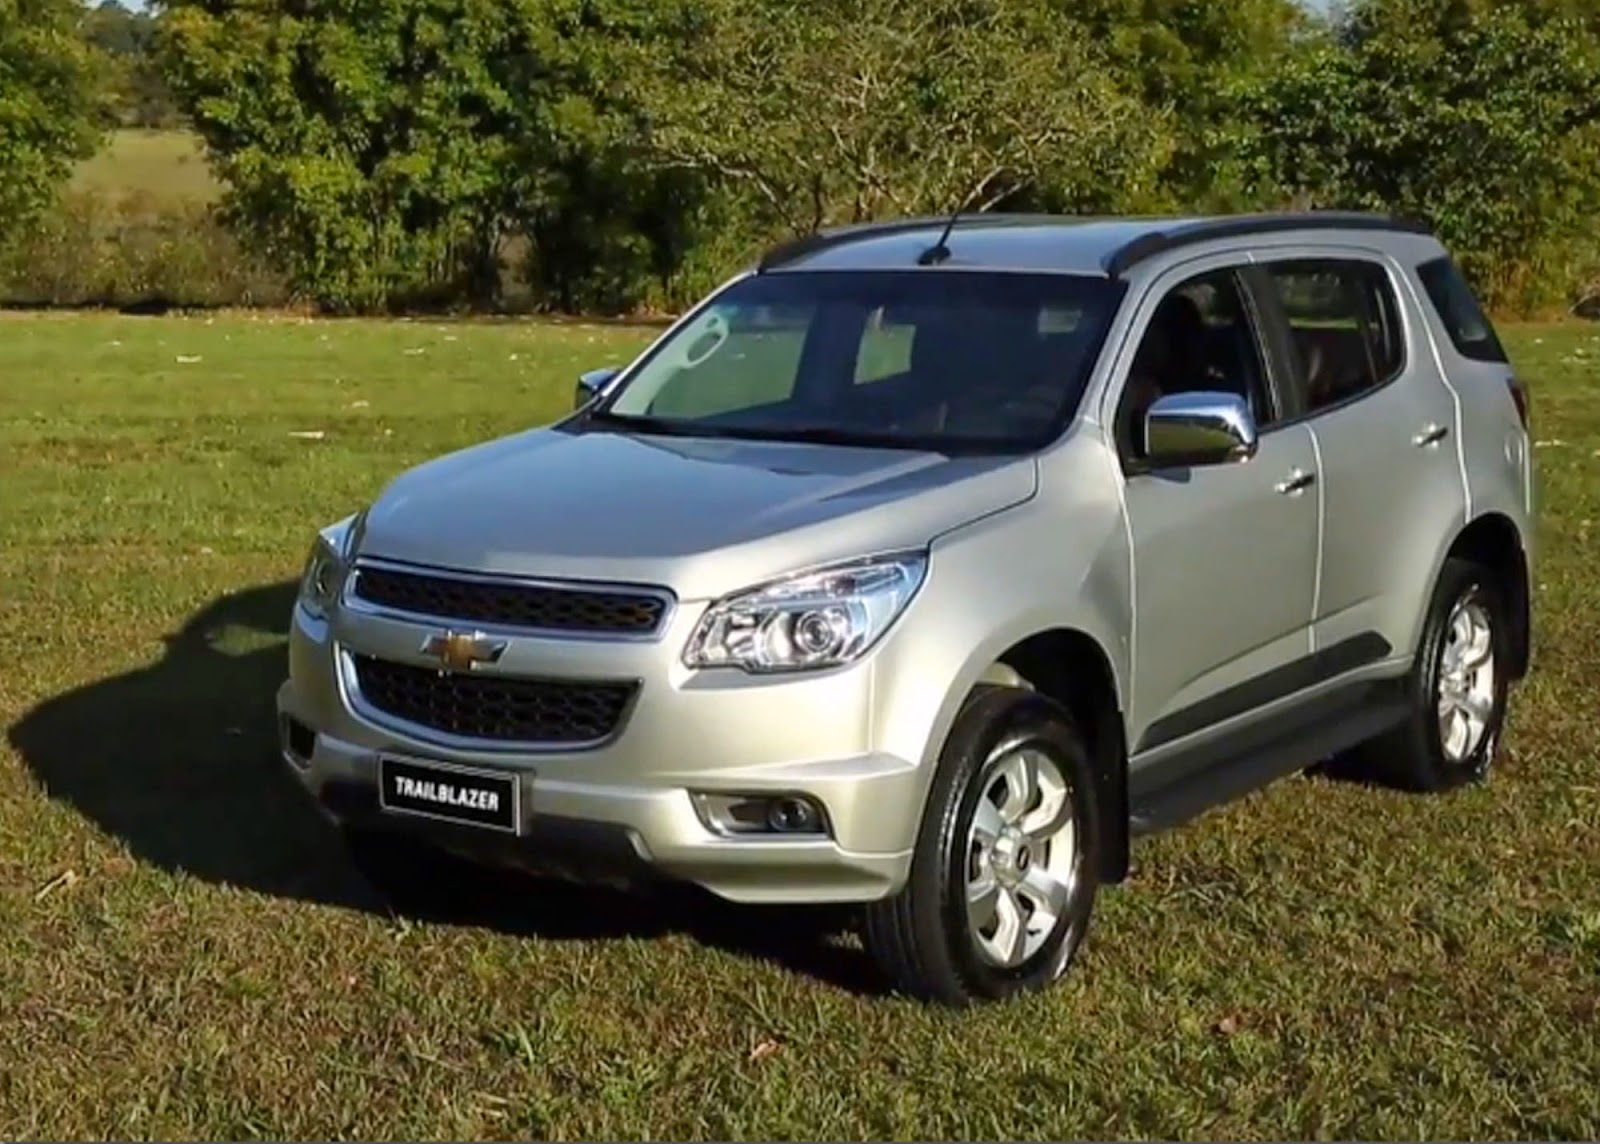 When Is The 2015 Chevy Trailblazer.html | Car Review, Specs, Price and